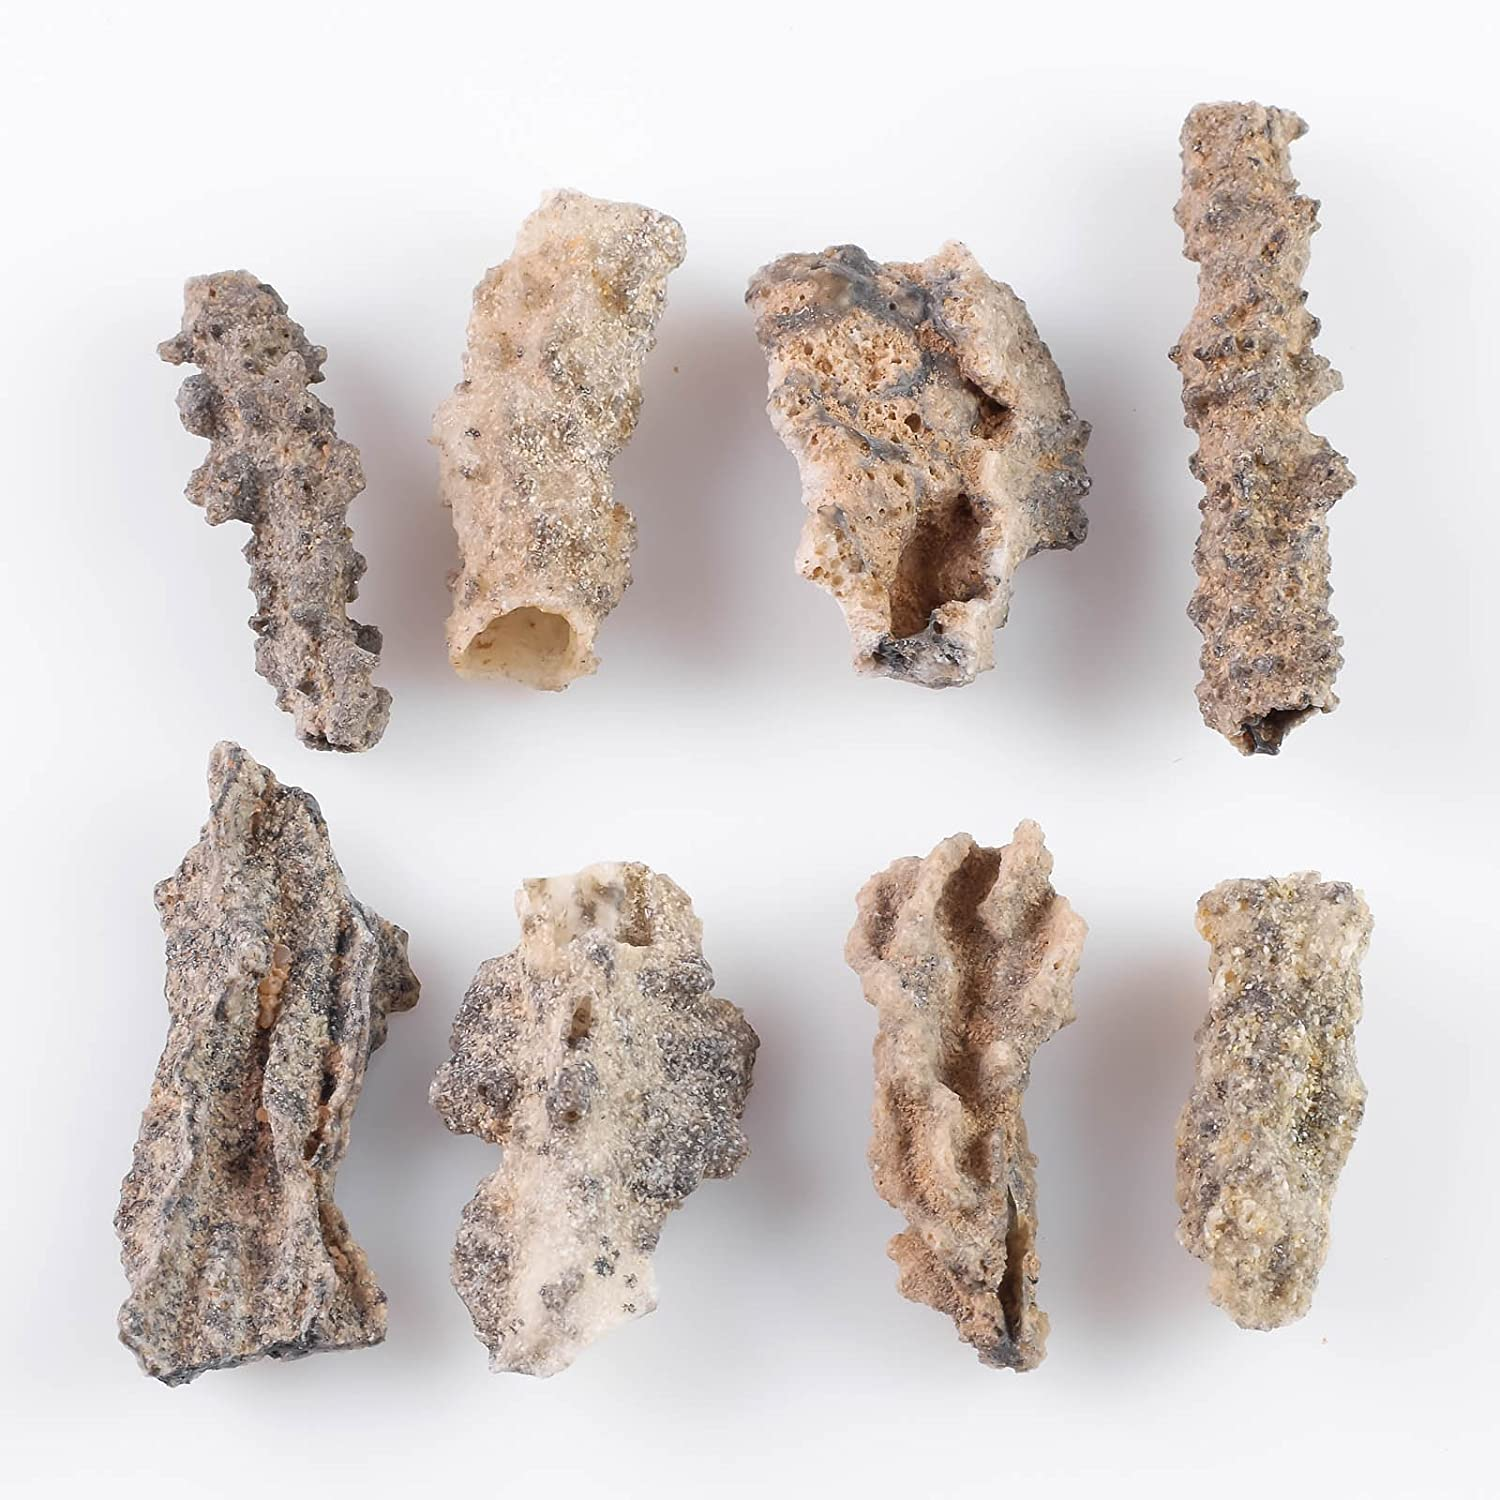 Fulgurite Meanings, Properties and Uses